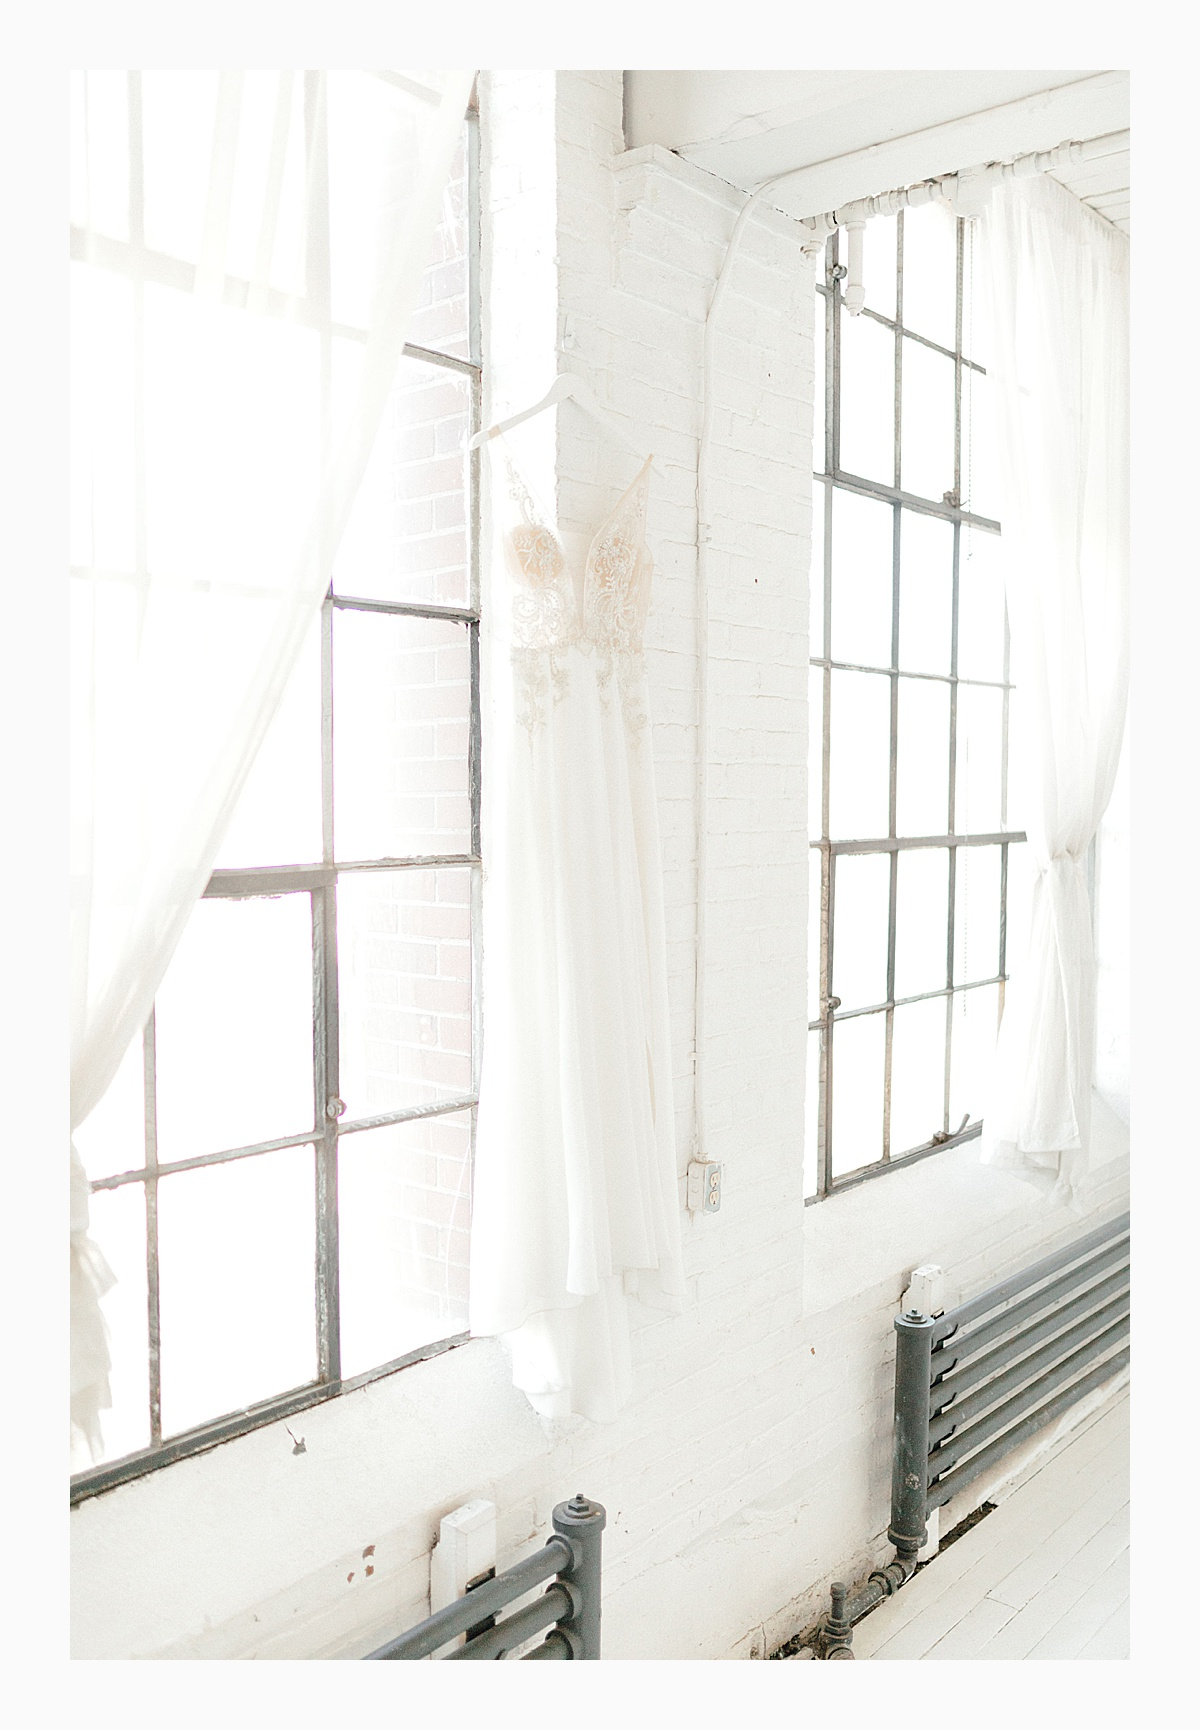 The Bemis Building in downtown Seattle is one of my favorite places to use for photo shoots!  This styled bridal shoot with touches of peach and white was dreamy.  #emmarosecompany #kindredpresets #seattlebride_0009.jpg